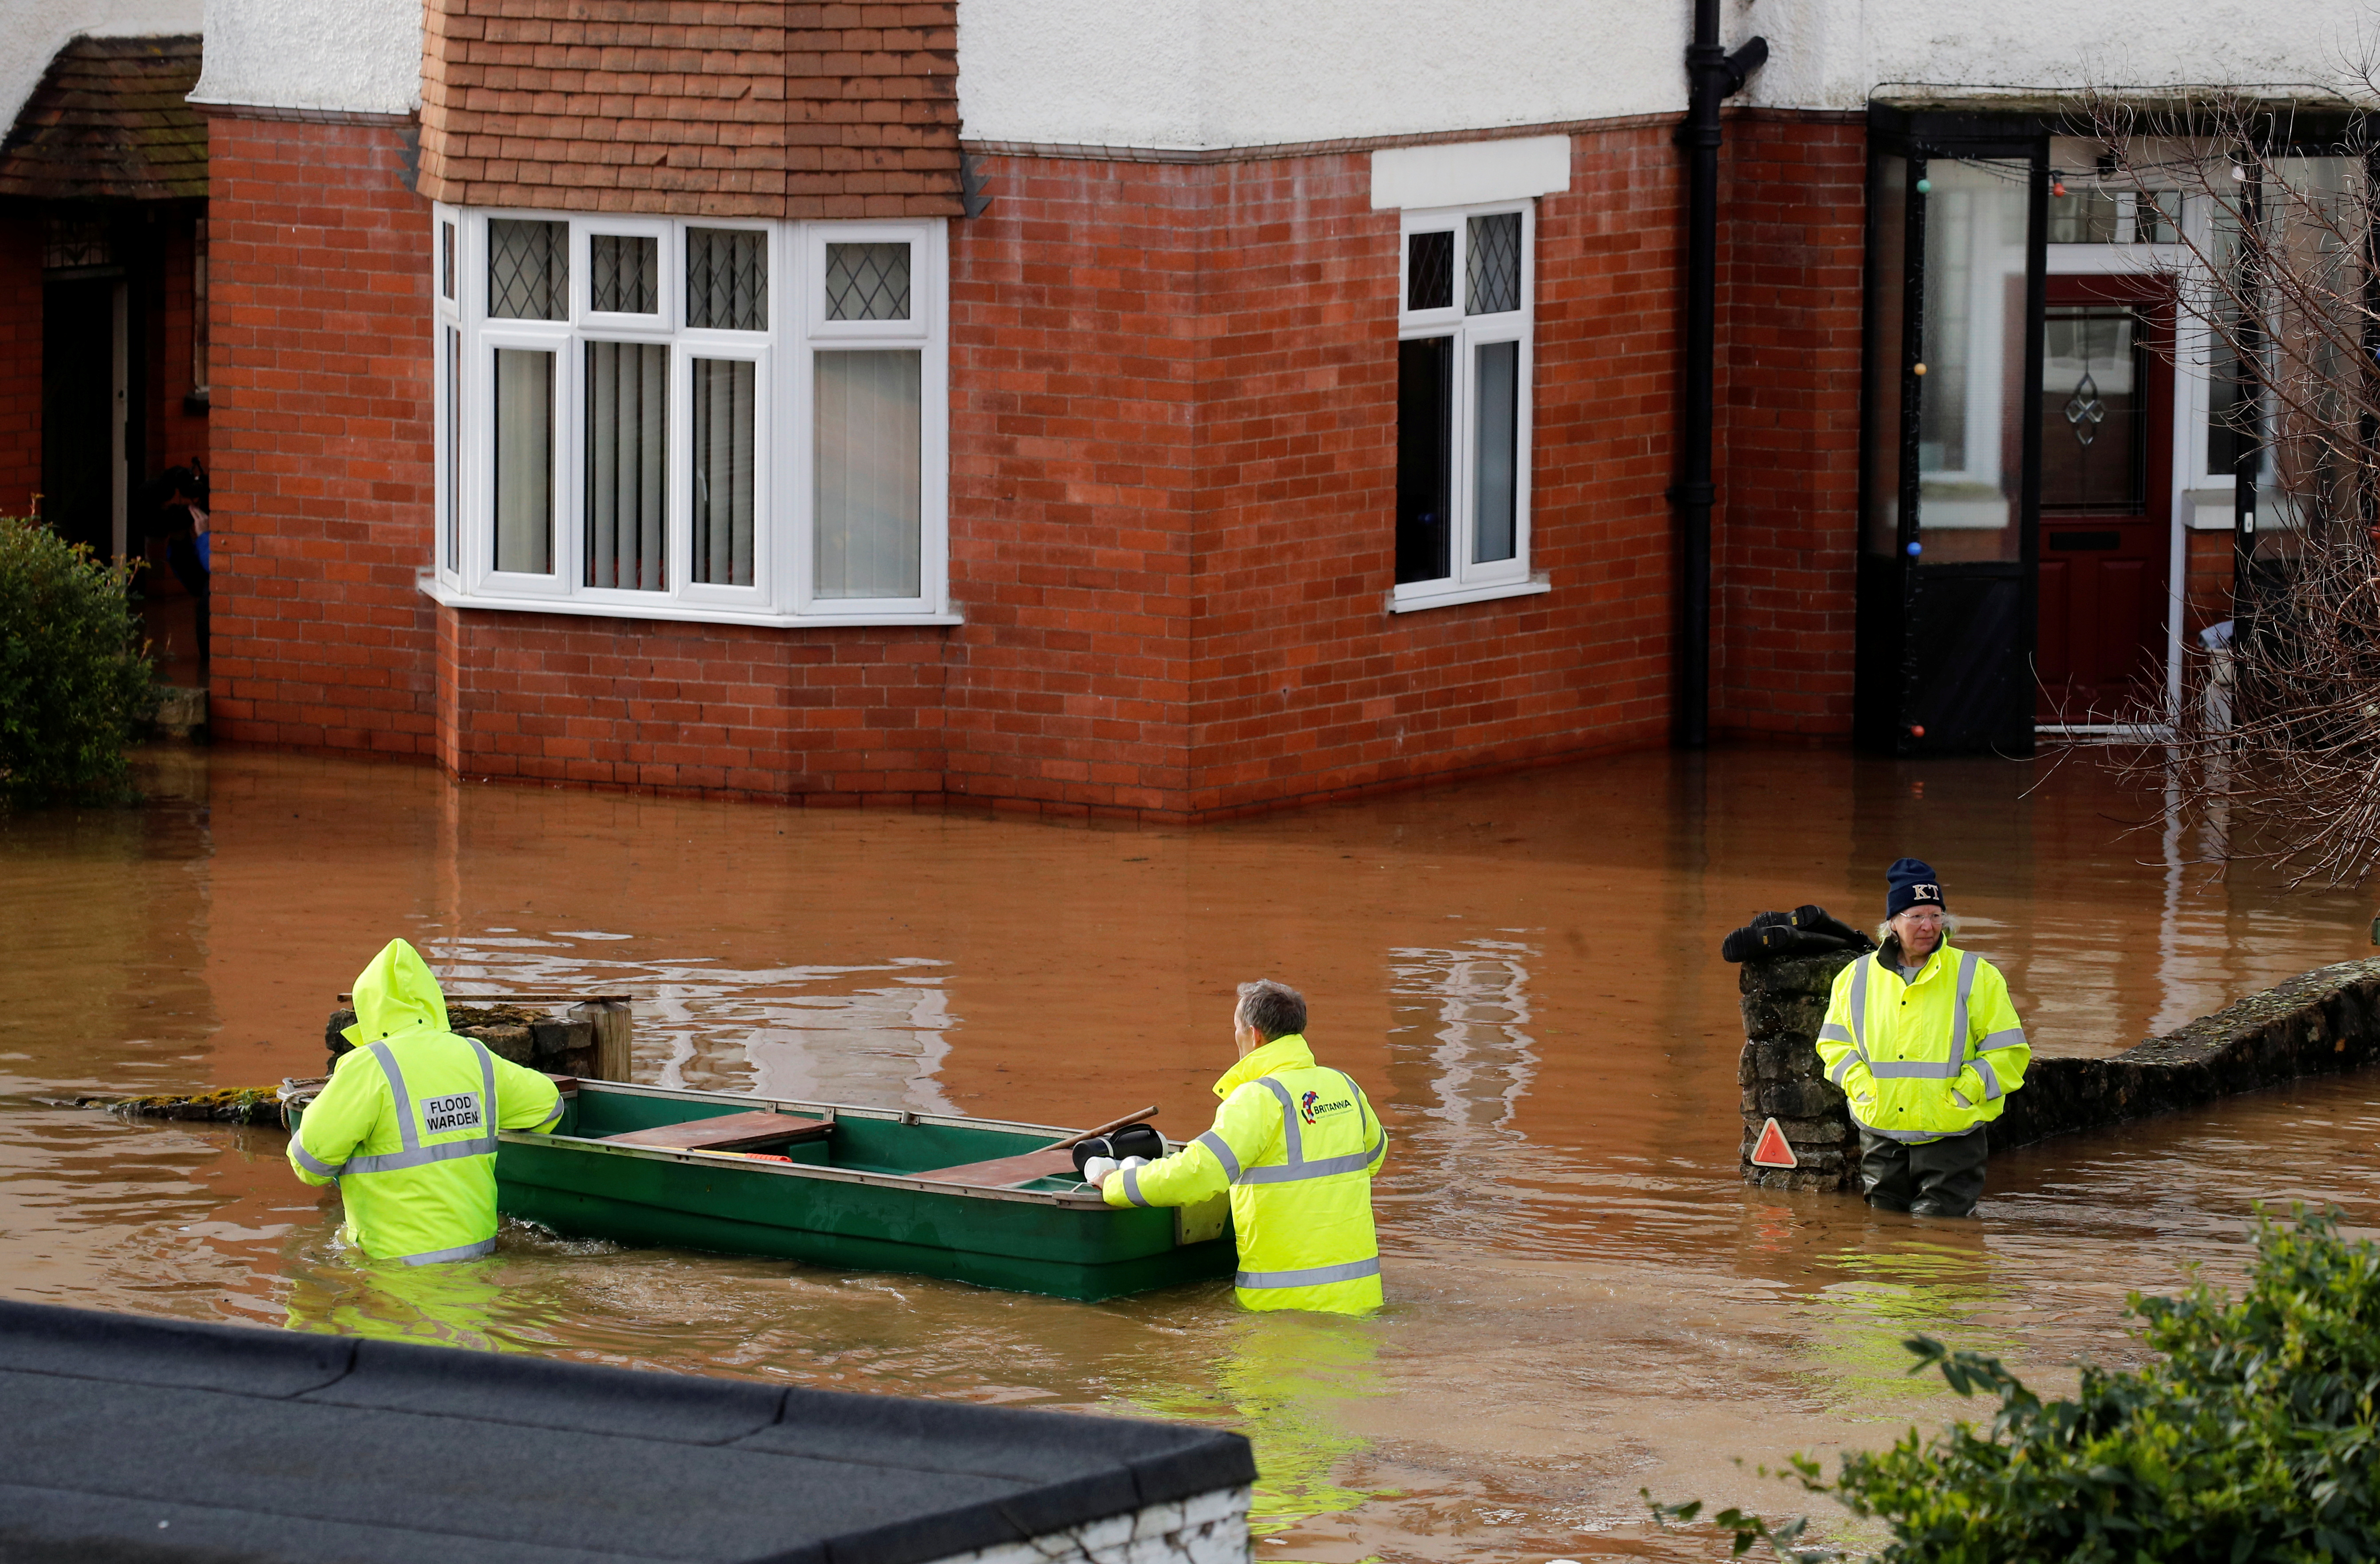 Emergency personnel look for people to rescue in a flooded street after Storm Dennis in Hereford, Britain February 17, 2020. REUTERS/Phil Noble/File Photo